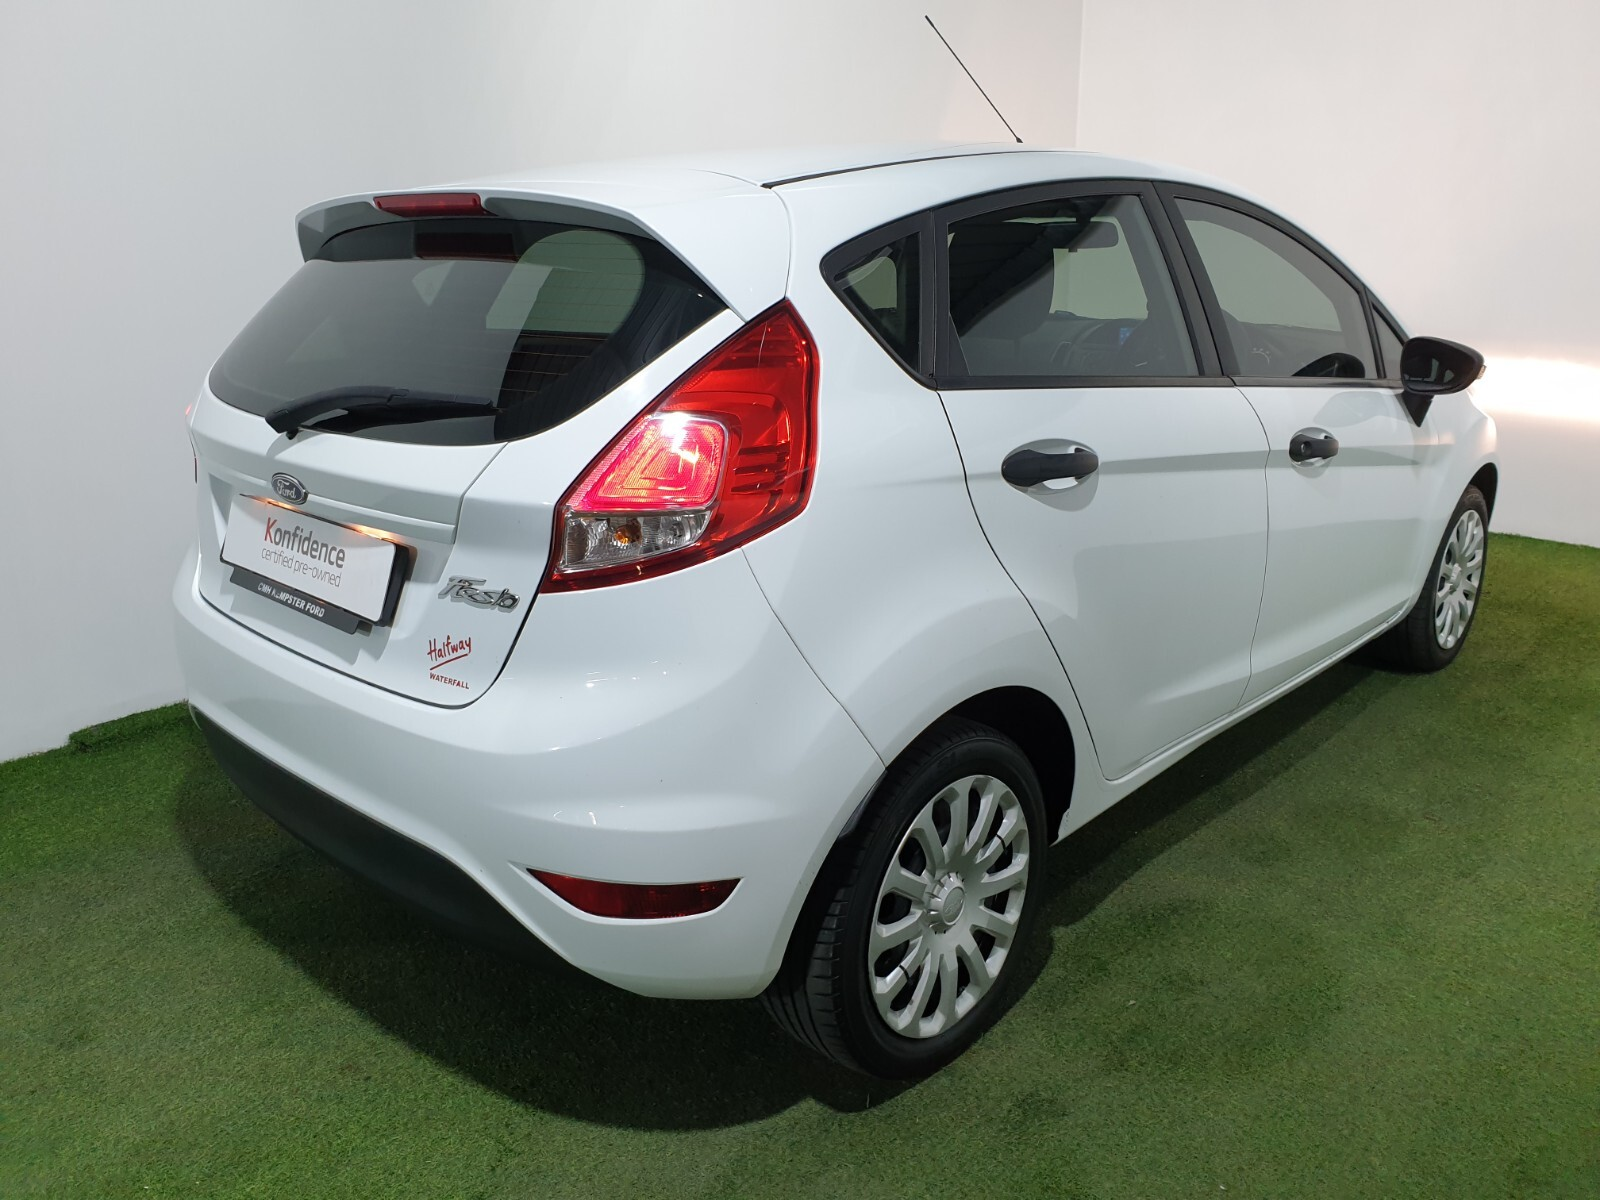 FORD 1.4 AMBIENTE 5 Dr Johannesburg 2327079